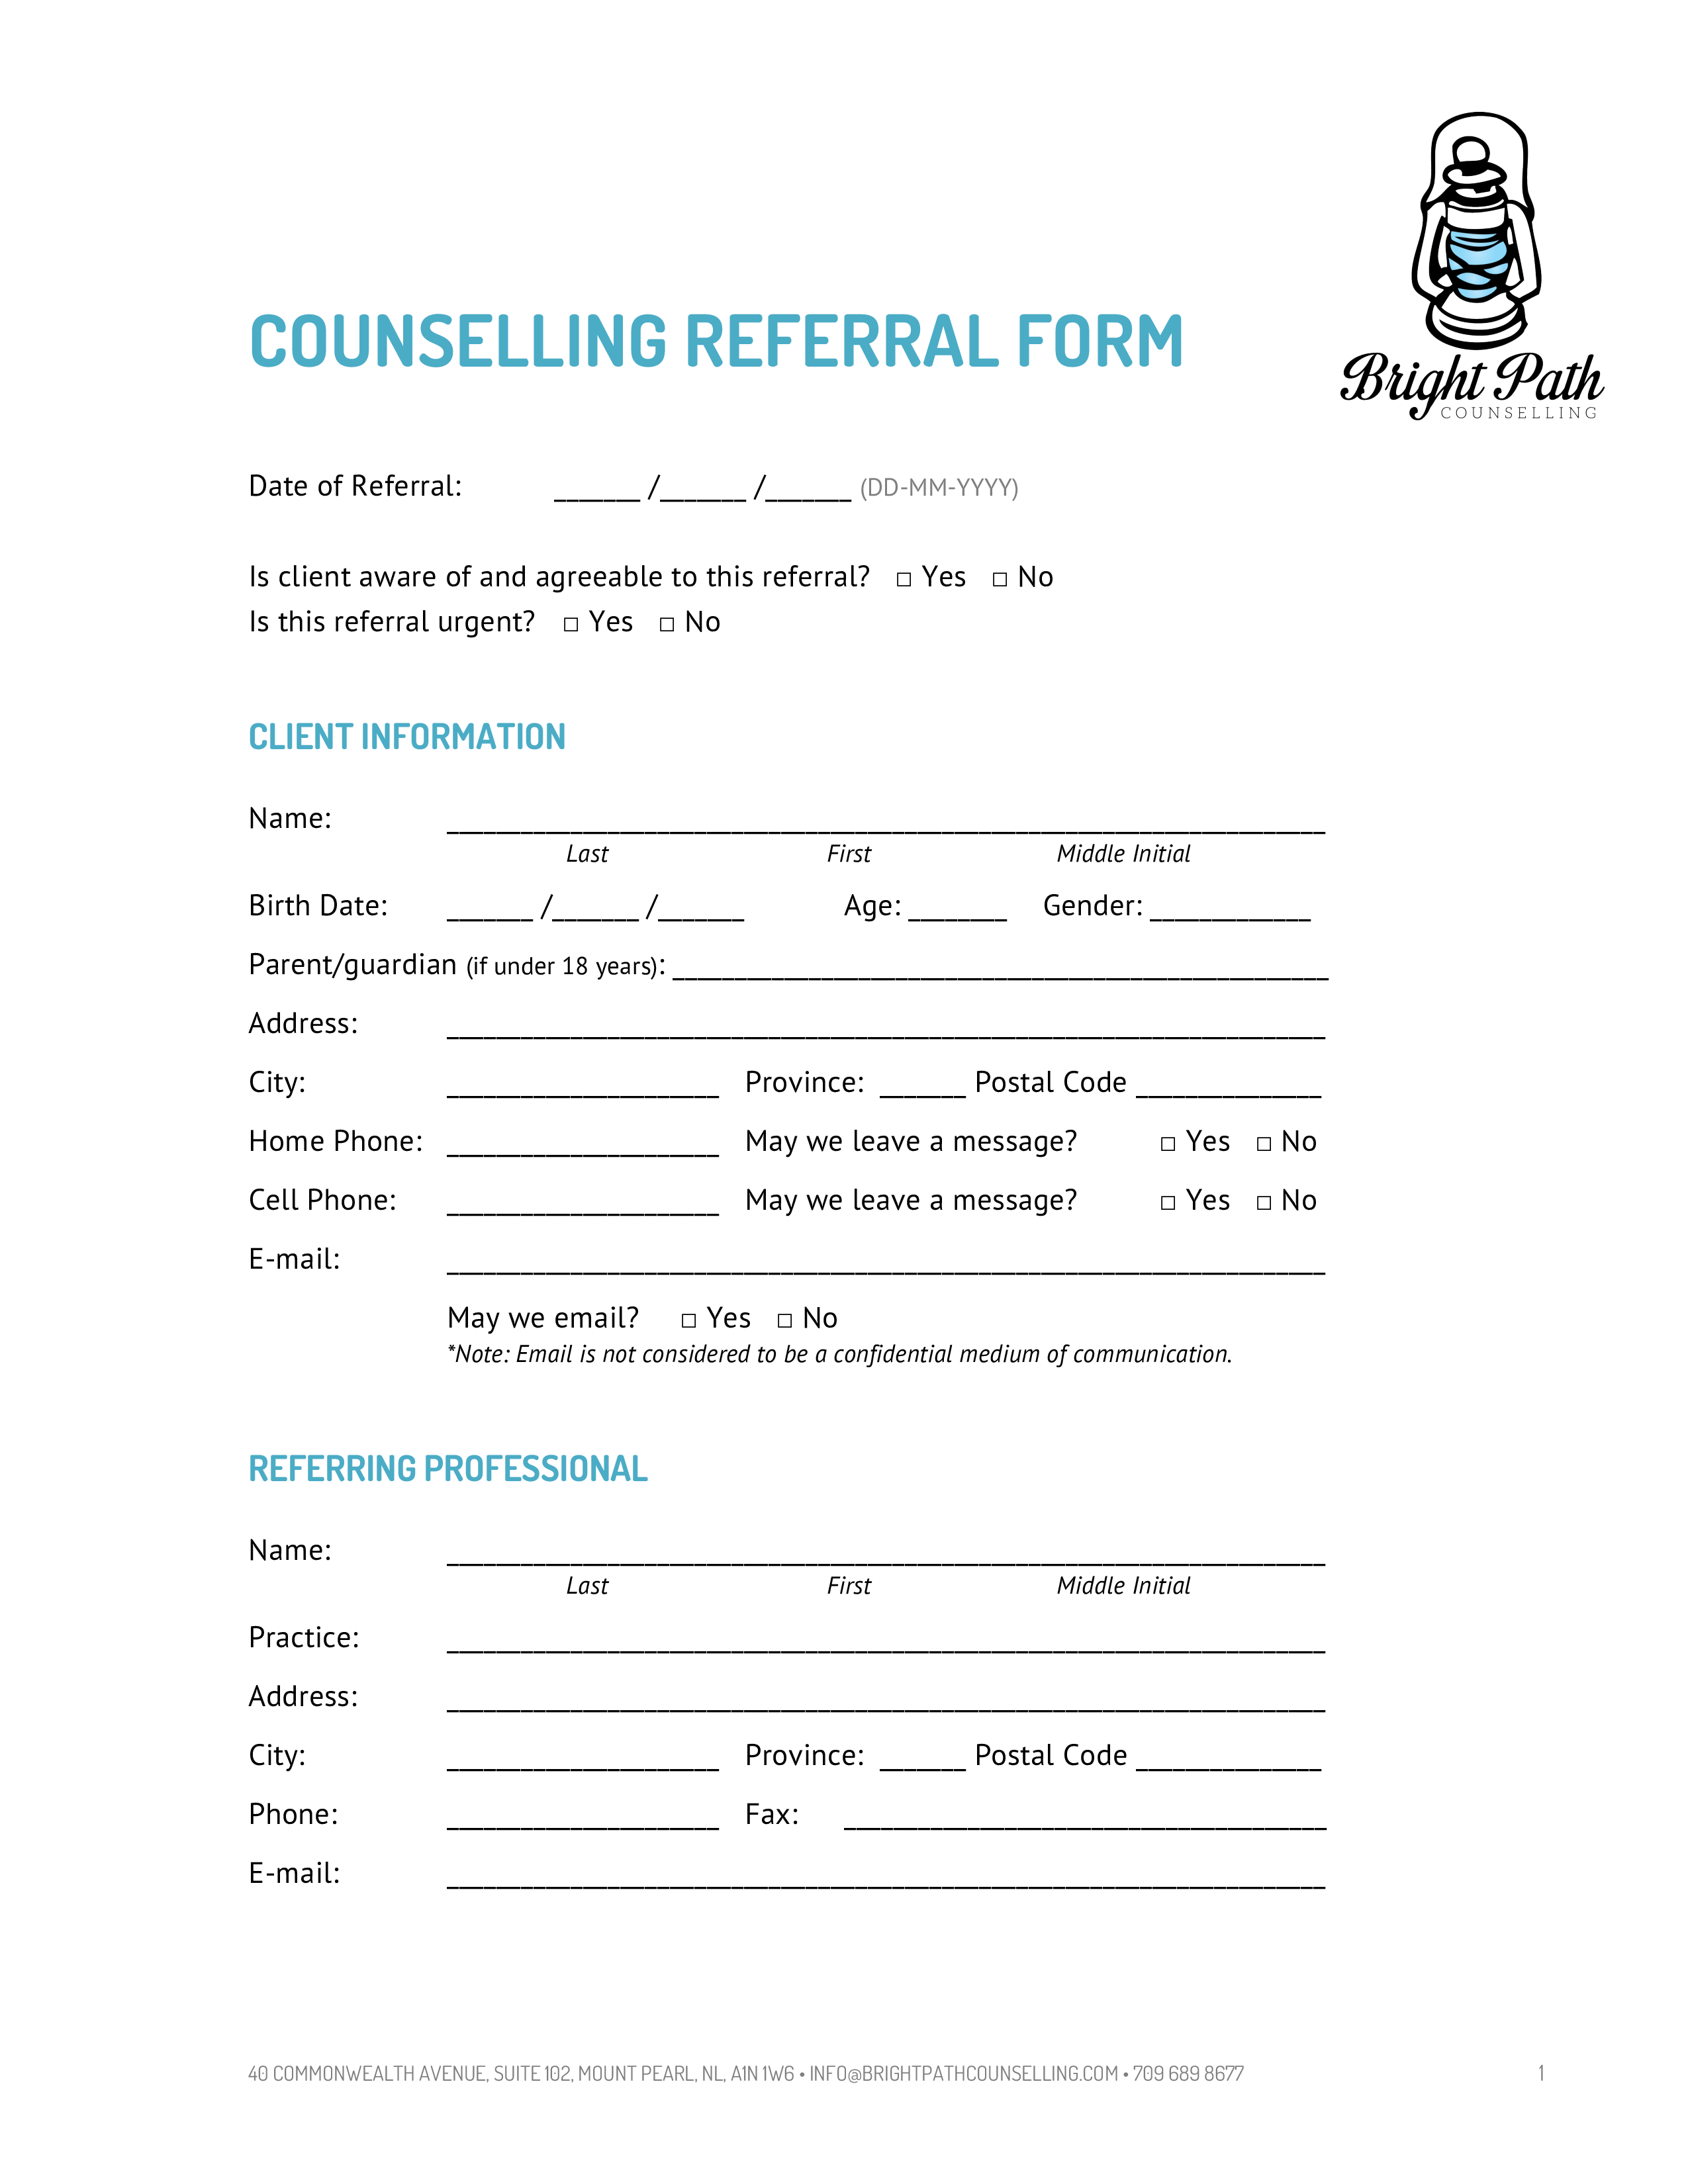 Free counselling referral form templates at for Referral document template